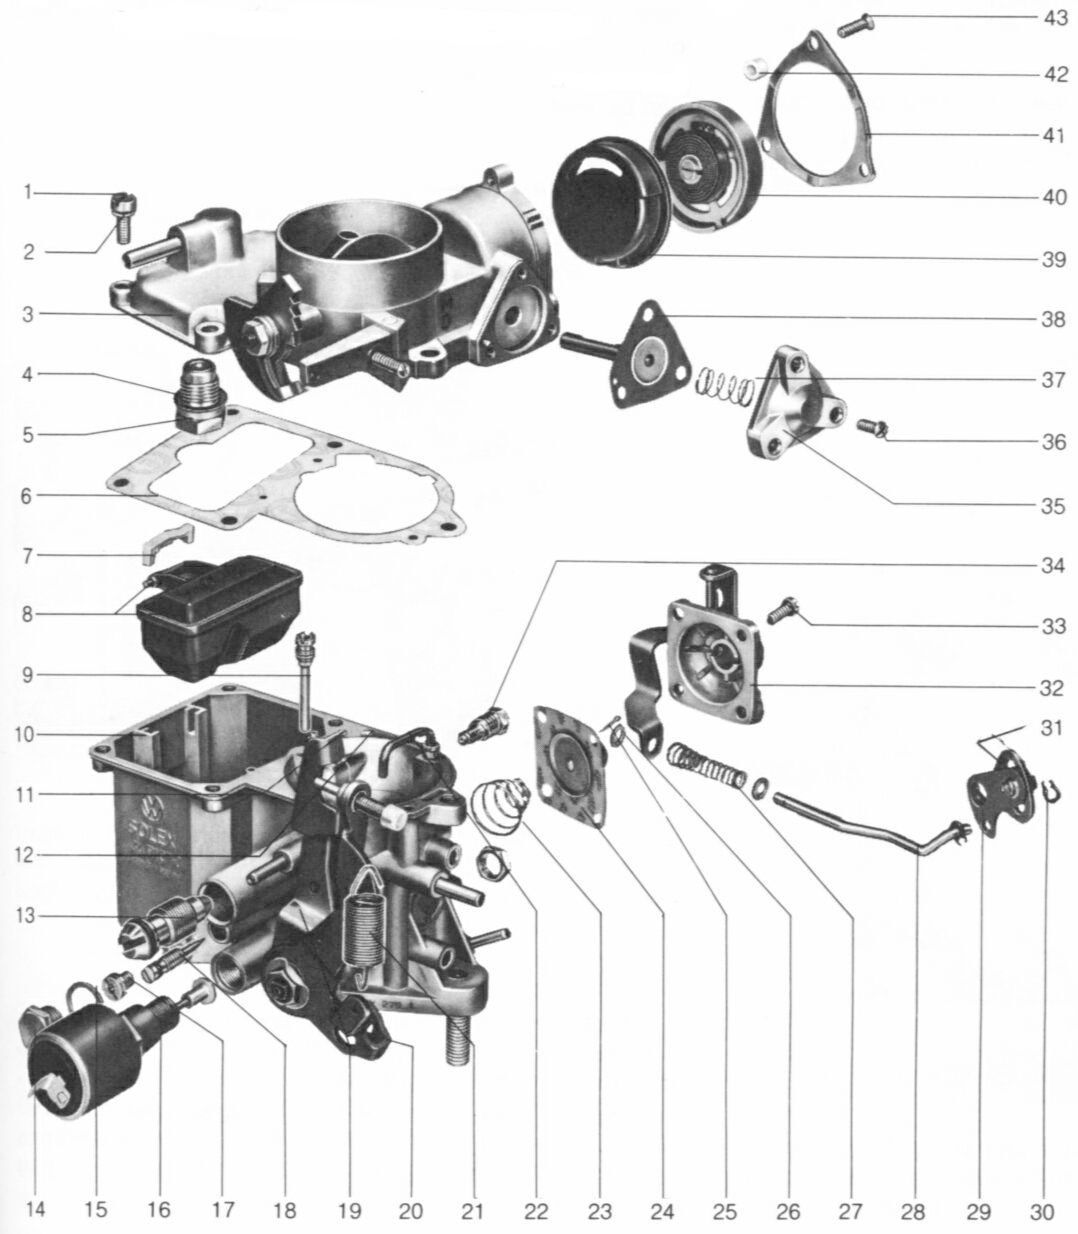 Vw 1600 Engine Diagram Starter And Wiring Furthermore 1970 Beetle Parts On Ford F 100 Through 350 Truck 1967 Likewise 73